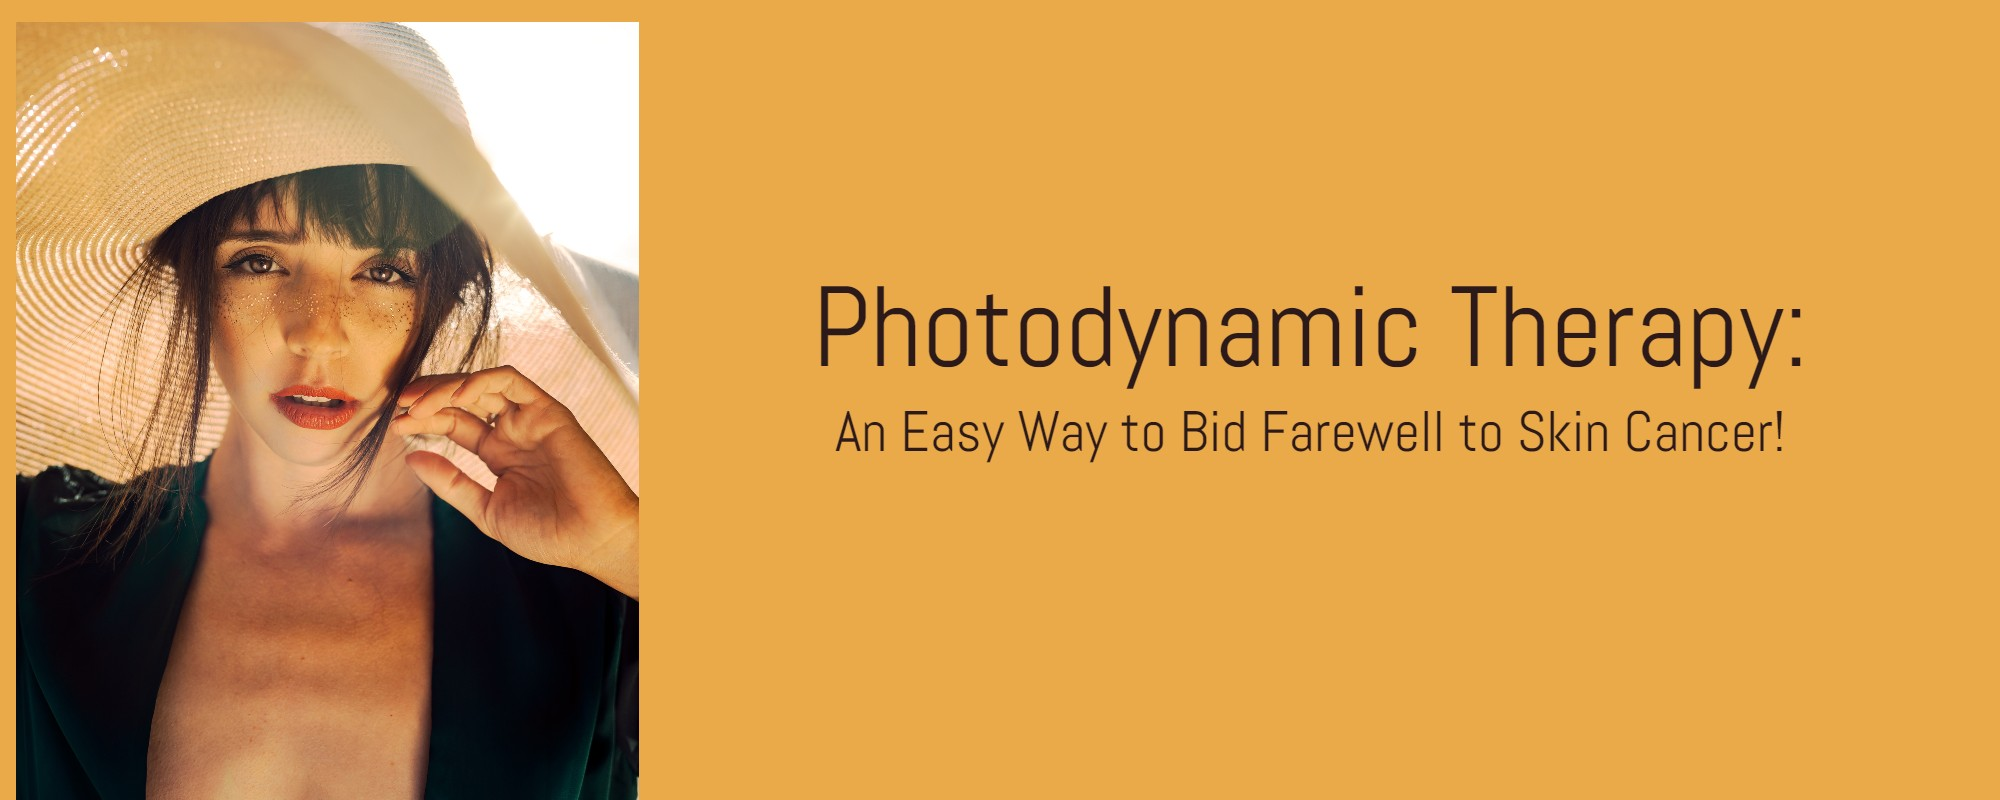 Photodynamic therapy for skin treatment